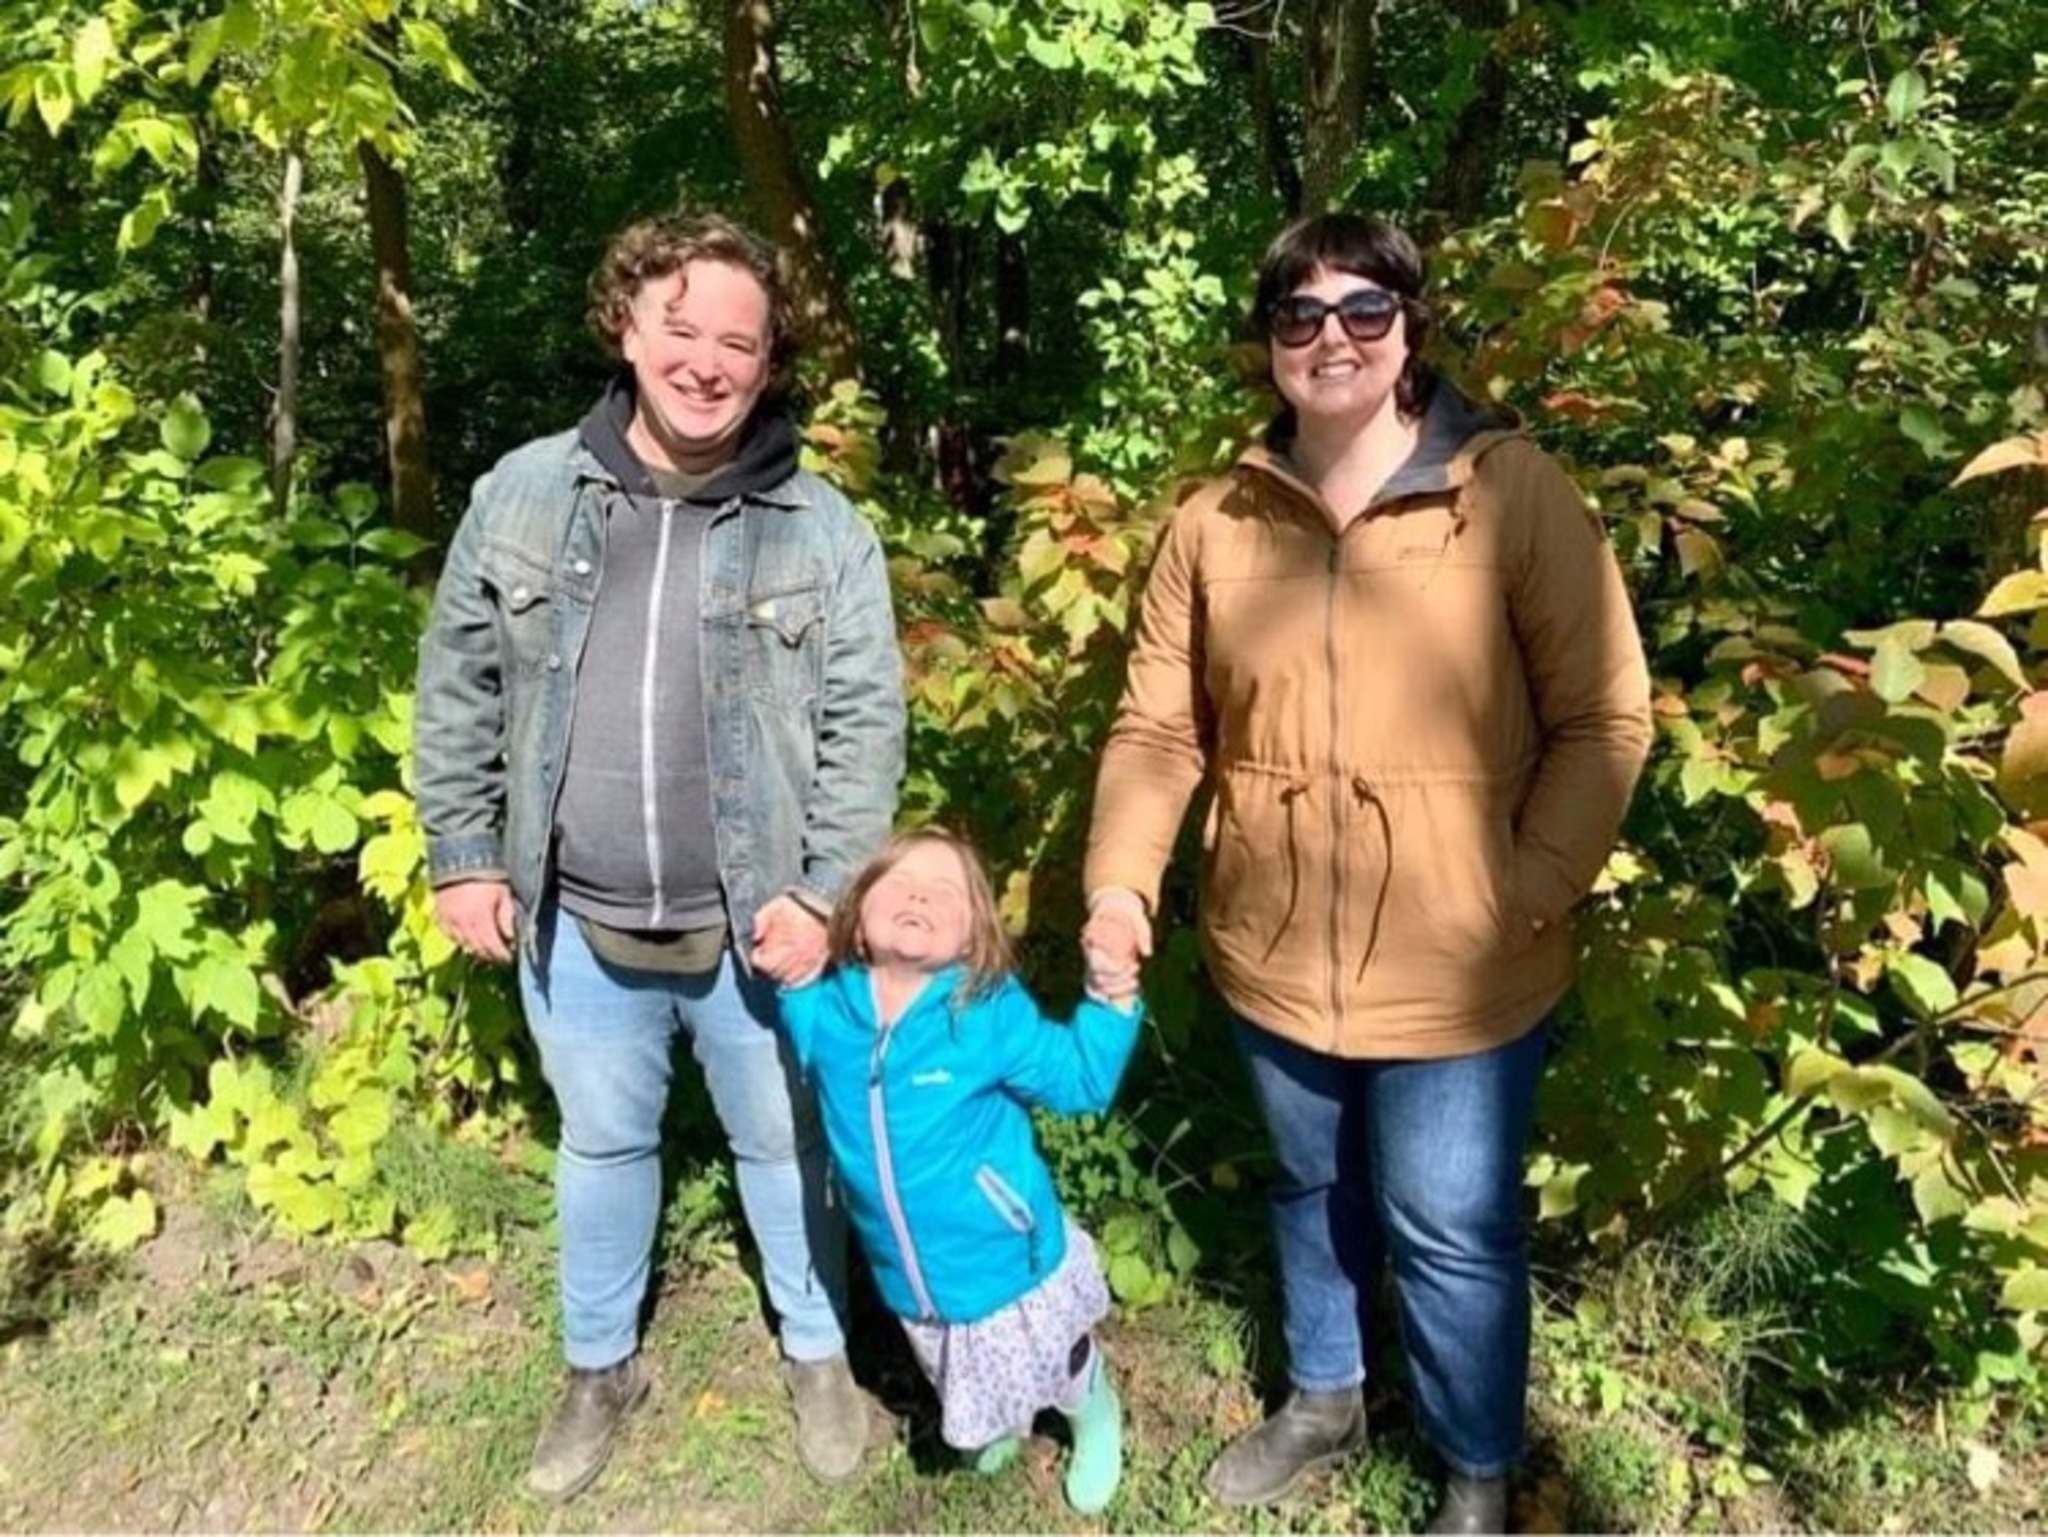 SUPPLIED</p><p>Winnipeg parents Rune Breckon, left, and Corinne Mason sent their daughter, Olive Breckon to pre-school this year so she could build her social-emotional intelligence with peers and teachers in class. </p></p><p>